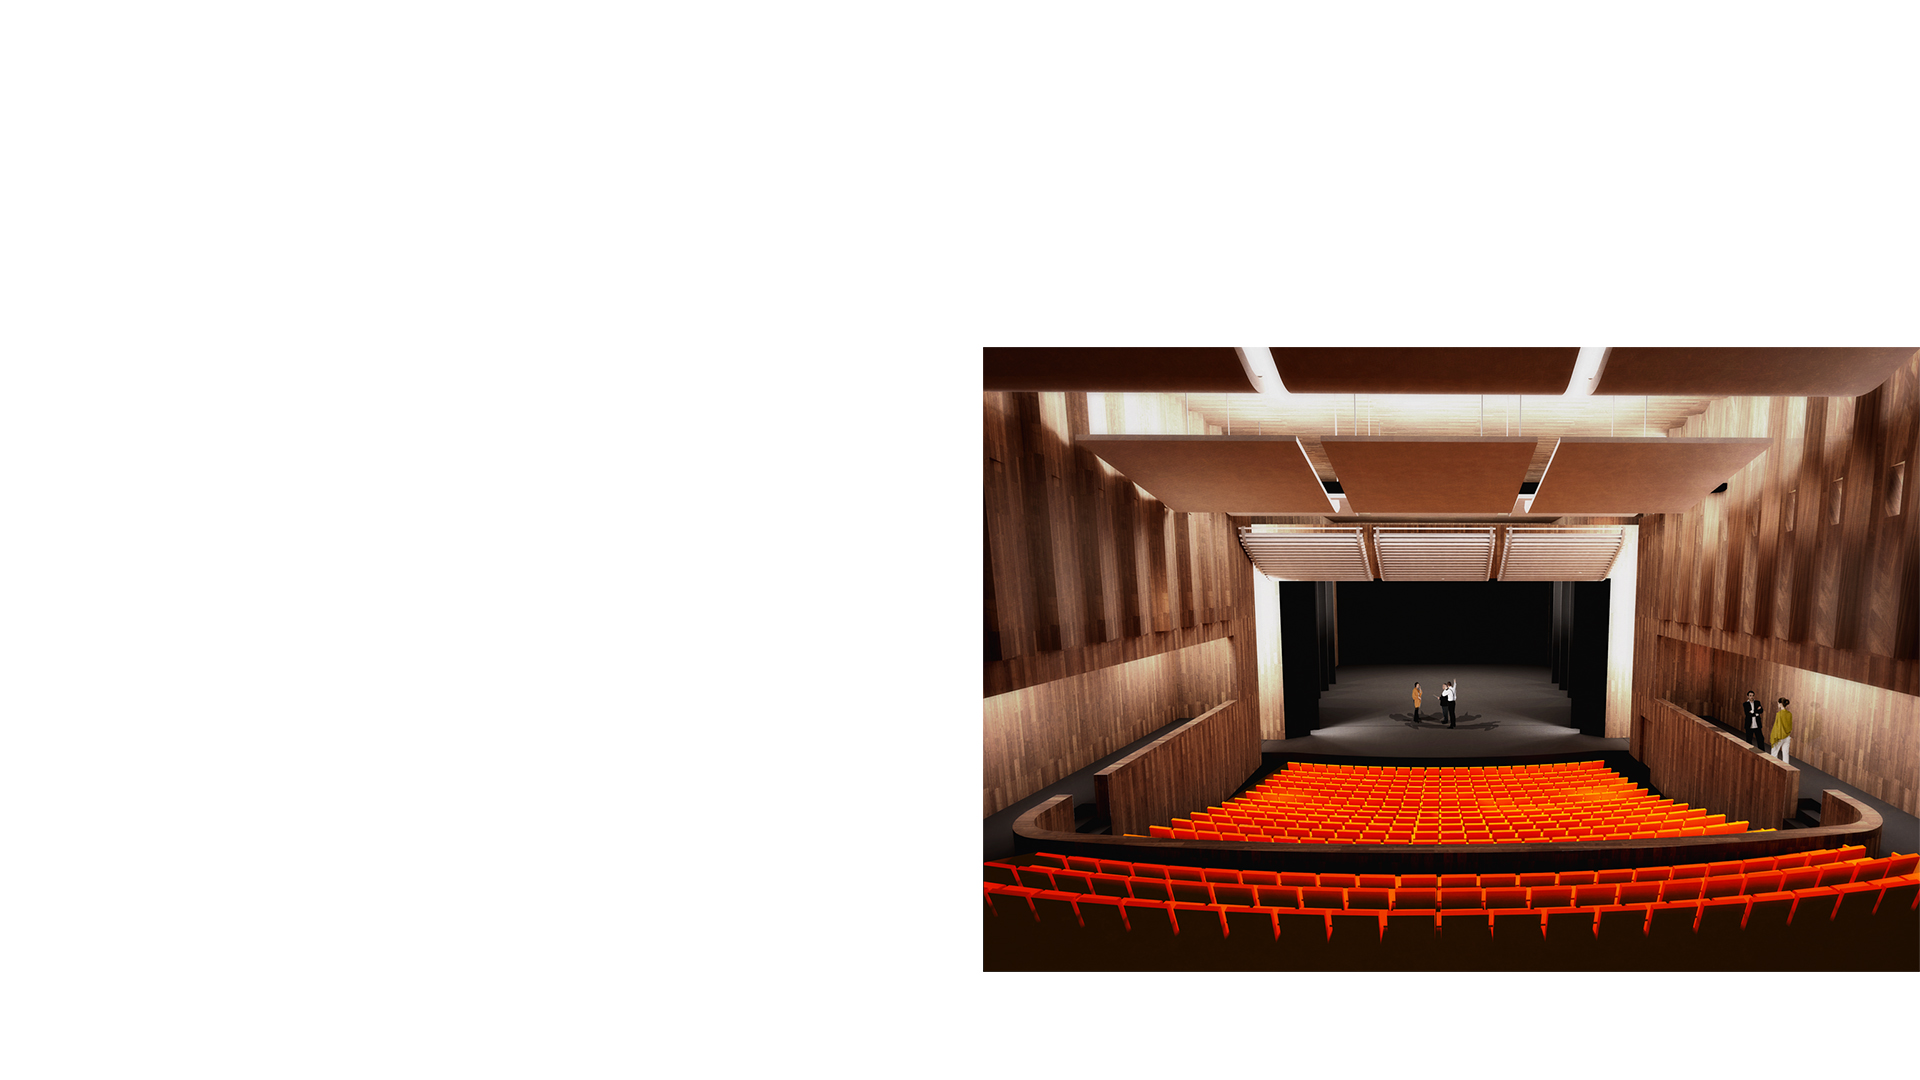 3D composite render of the 400 seat theatre at the Karlsruhe Staatstheater